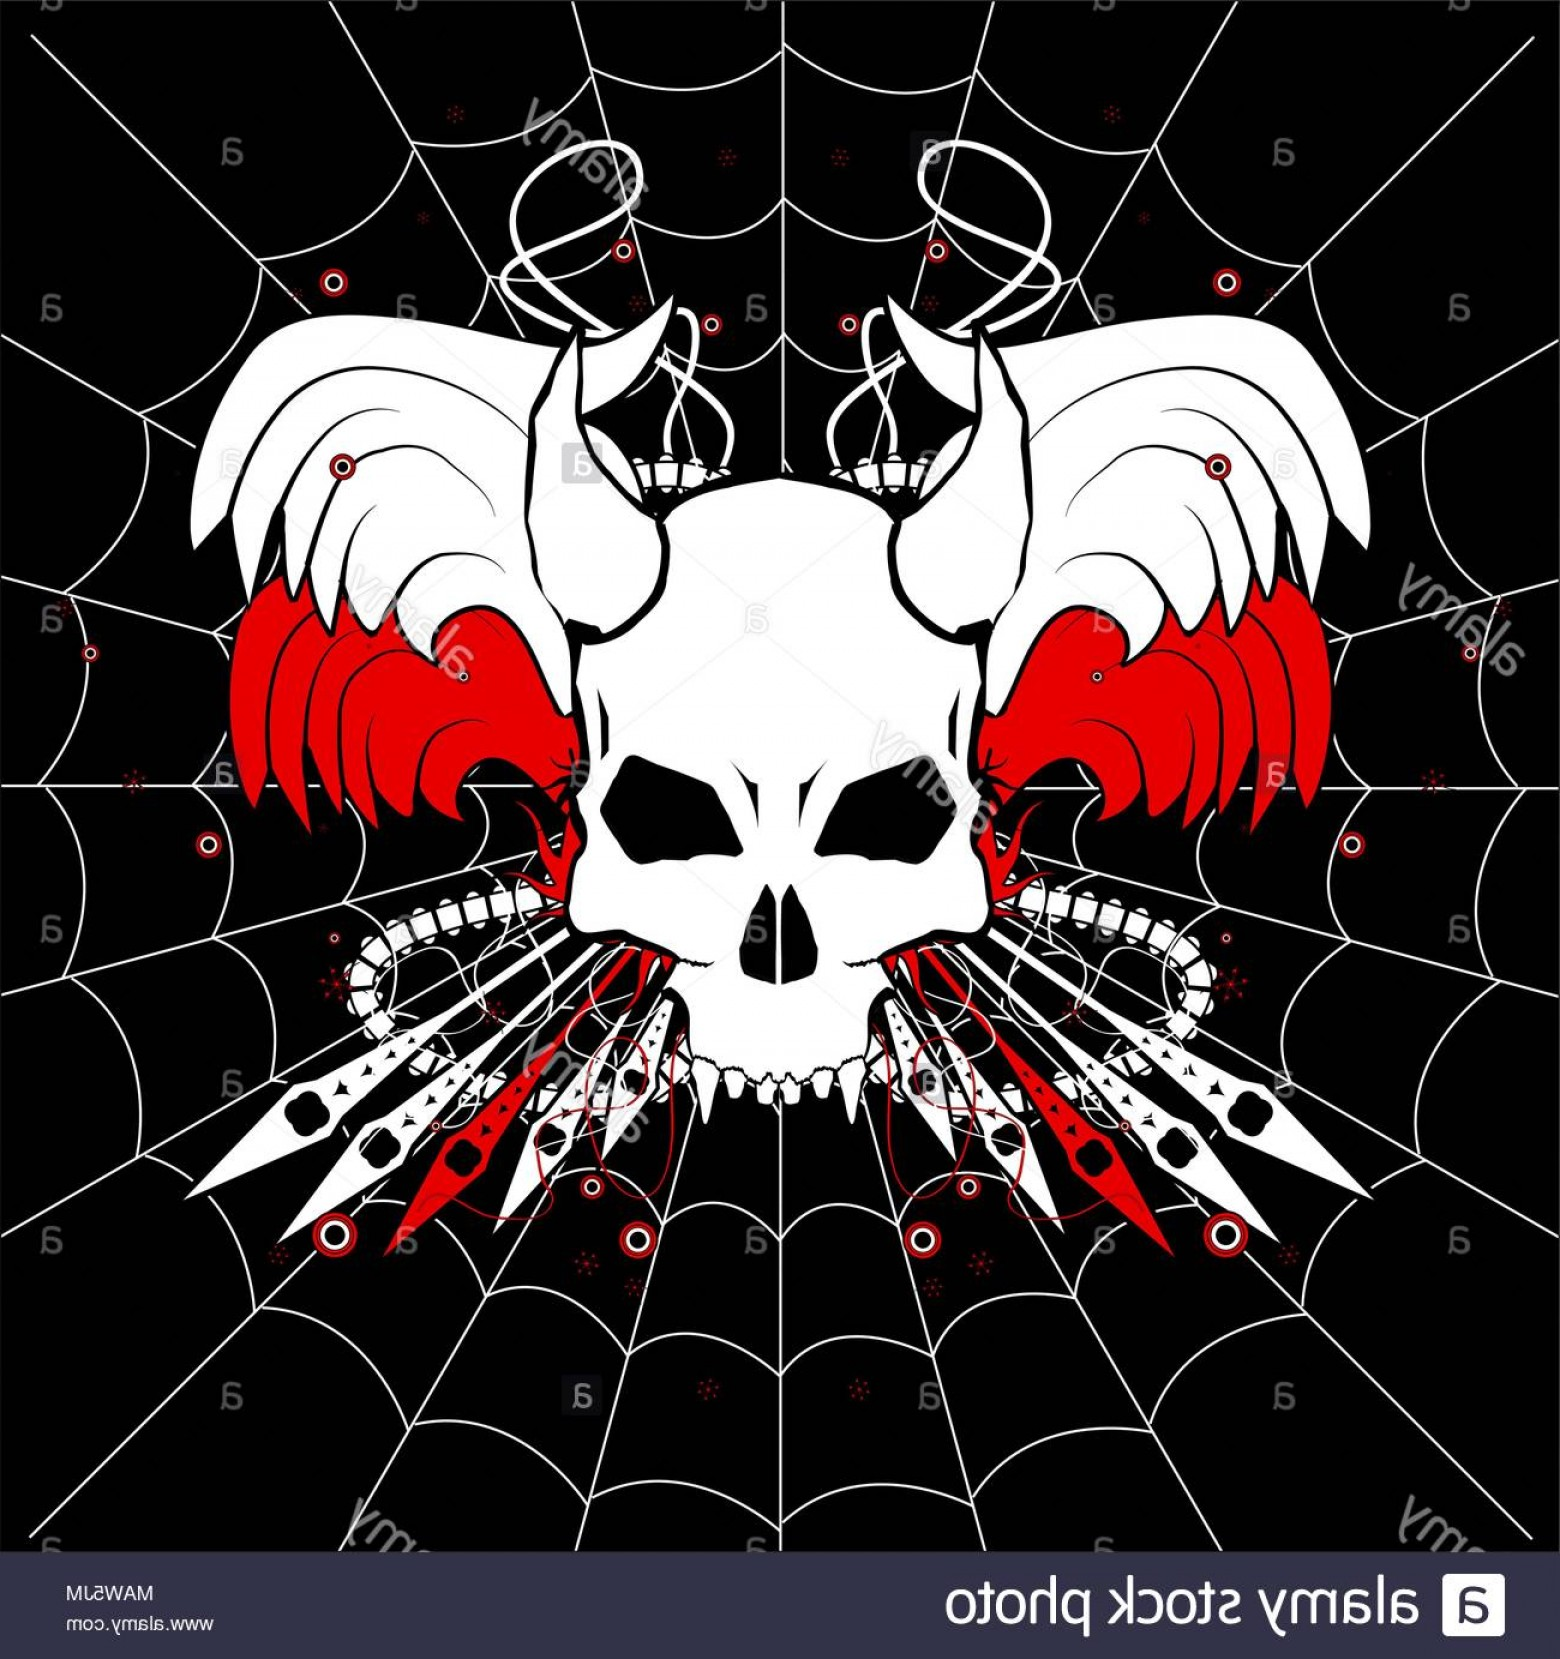 Red Black And White Vector Art: Red White And Black Vector Web Skull Emblem Horizontal Image